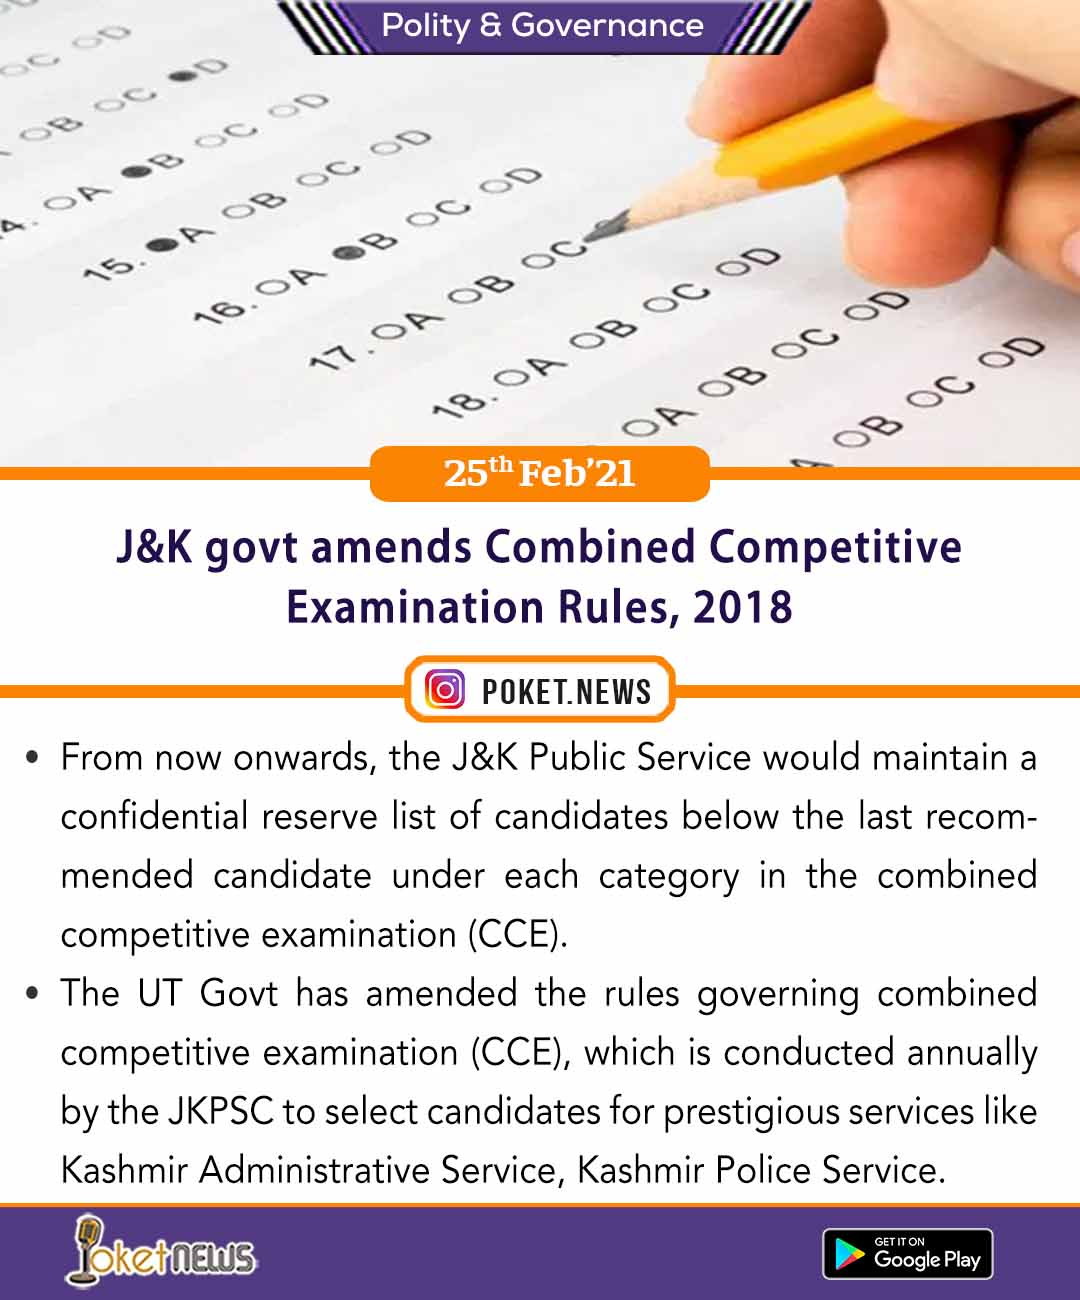 J&K govt amends Combined Competitive Examination Rules, 2018